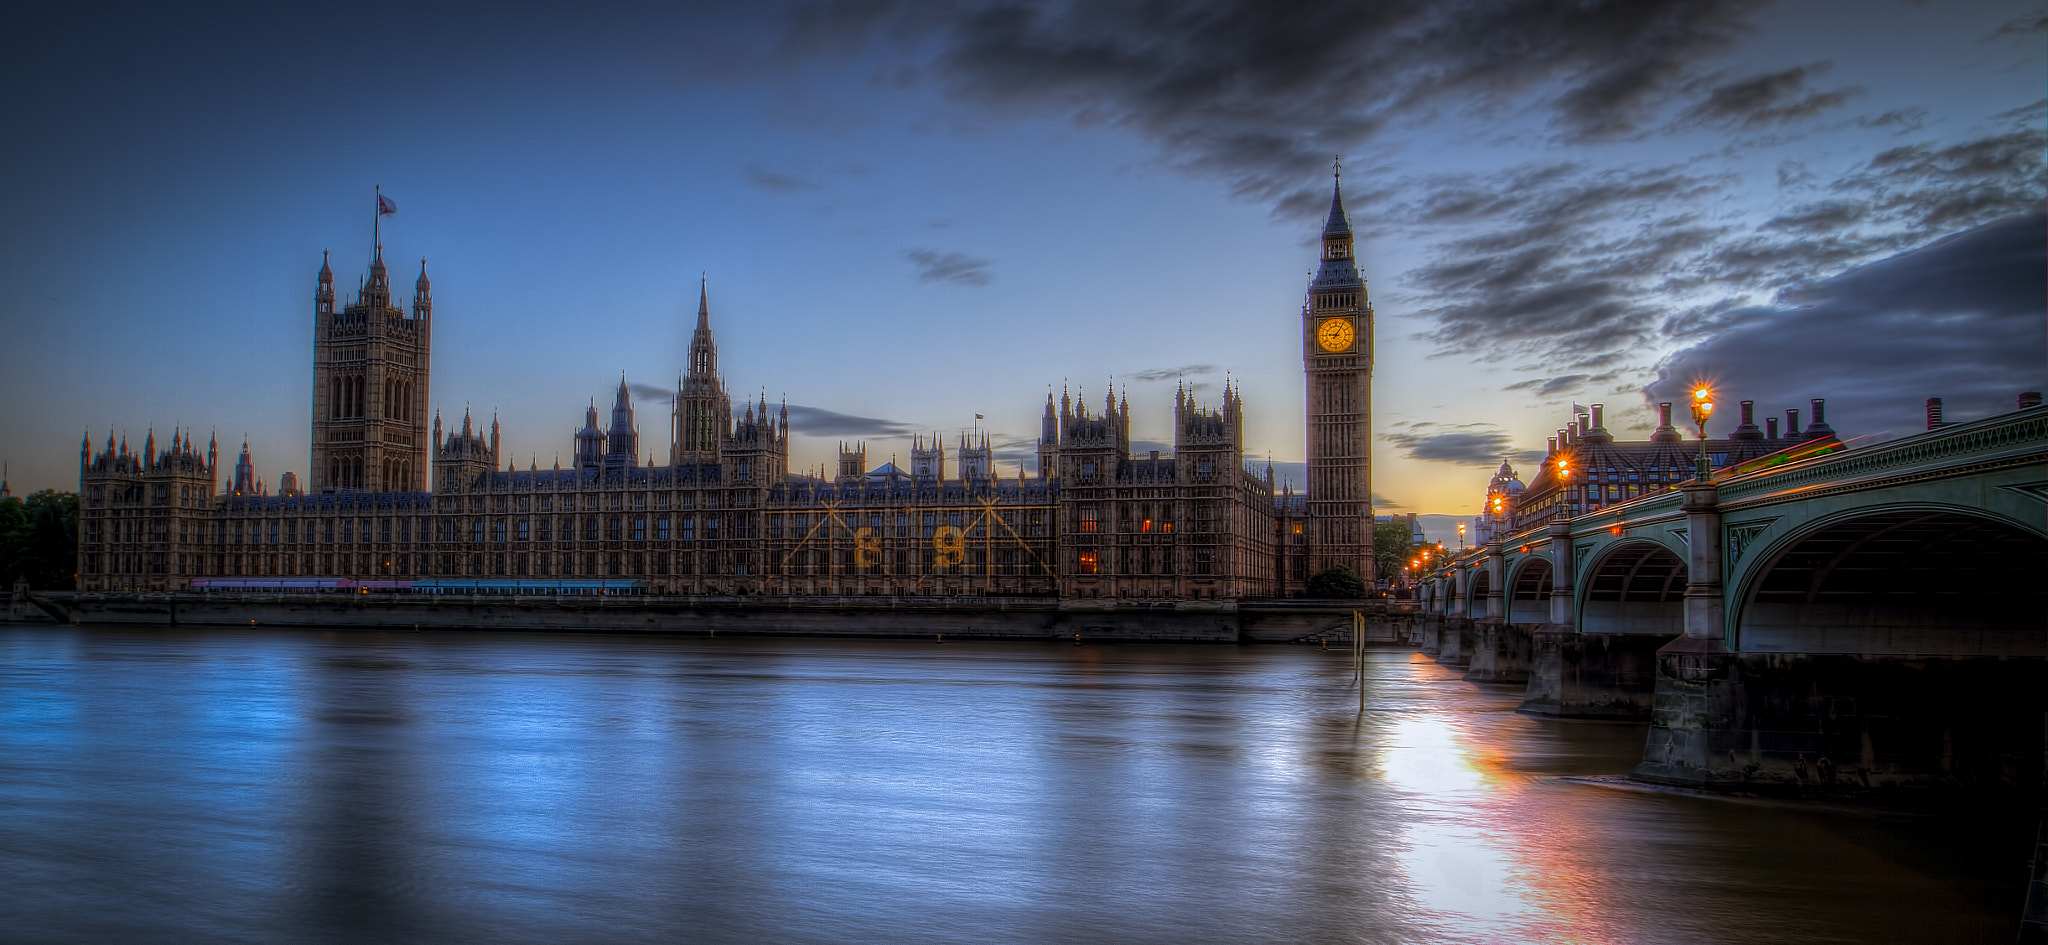 Photograph Houses of Parliament by René Ladenius on 500px